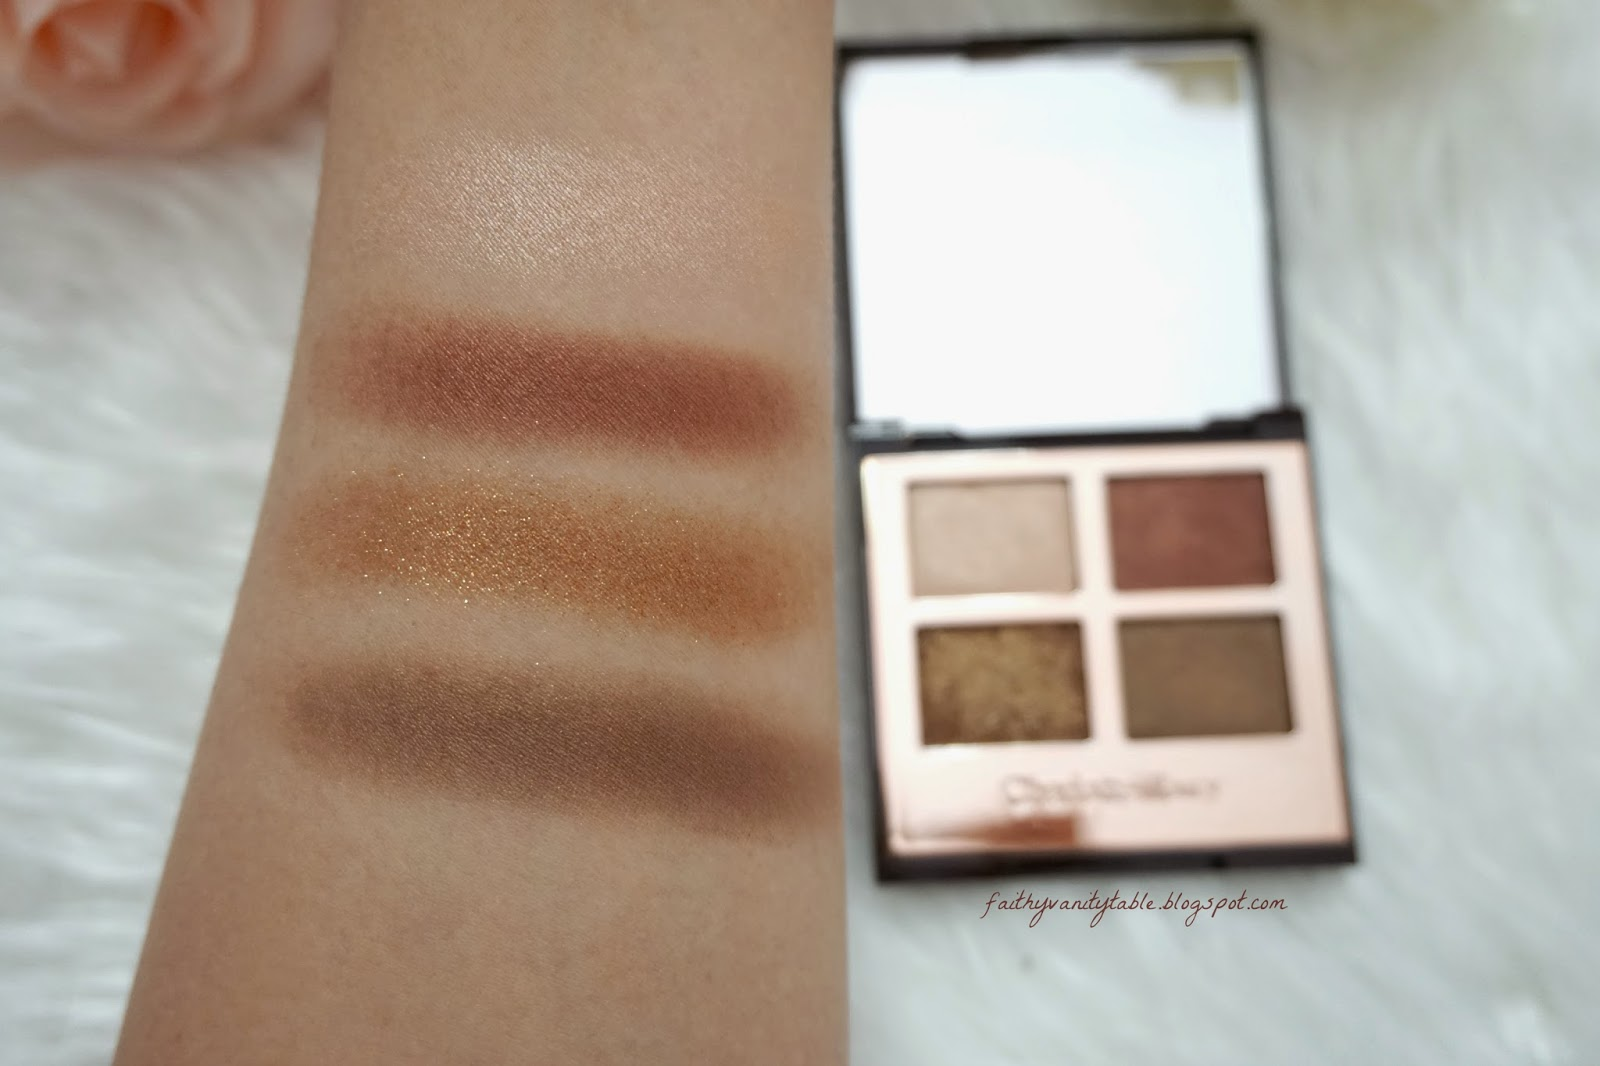 Swatches of Charlotte Tilbury Dolce Vita